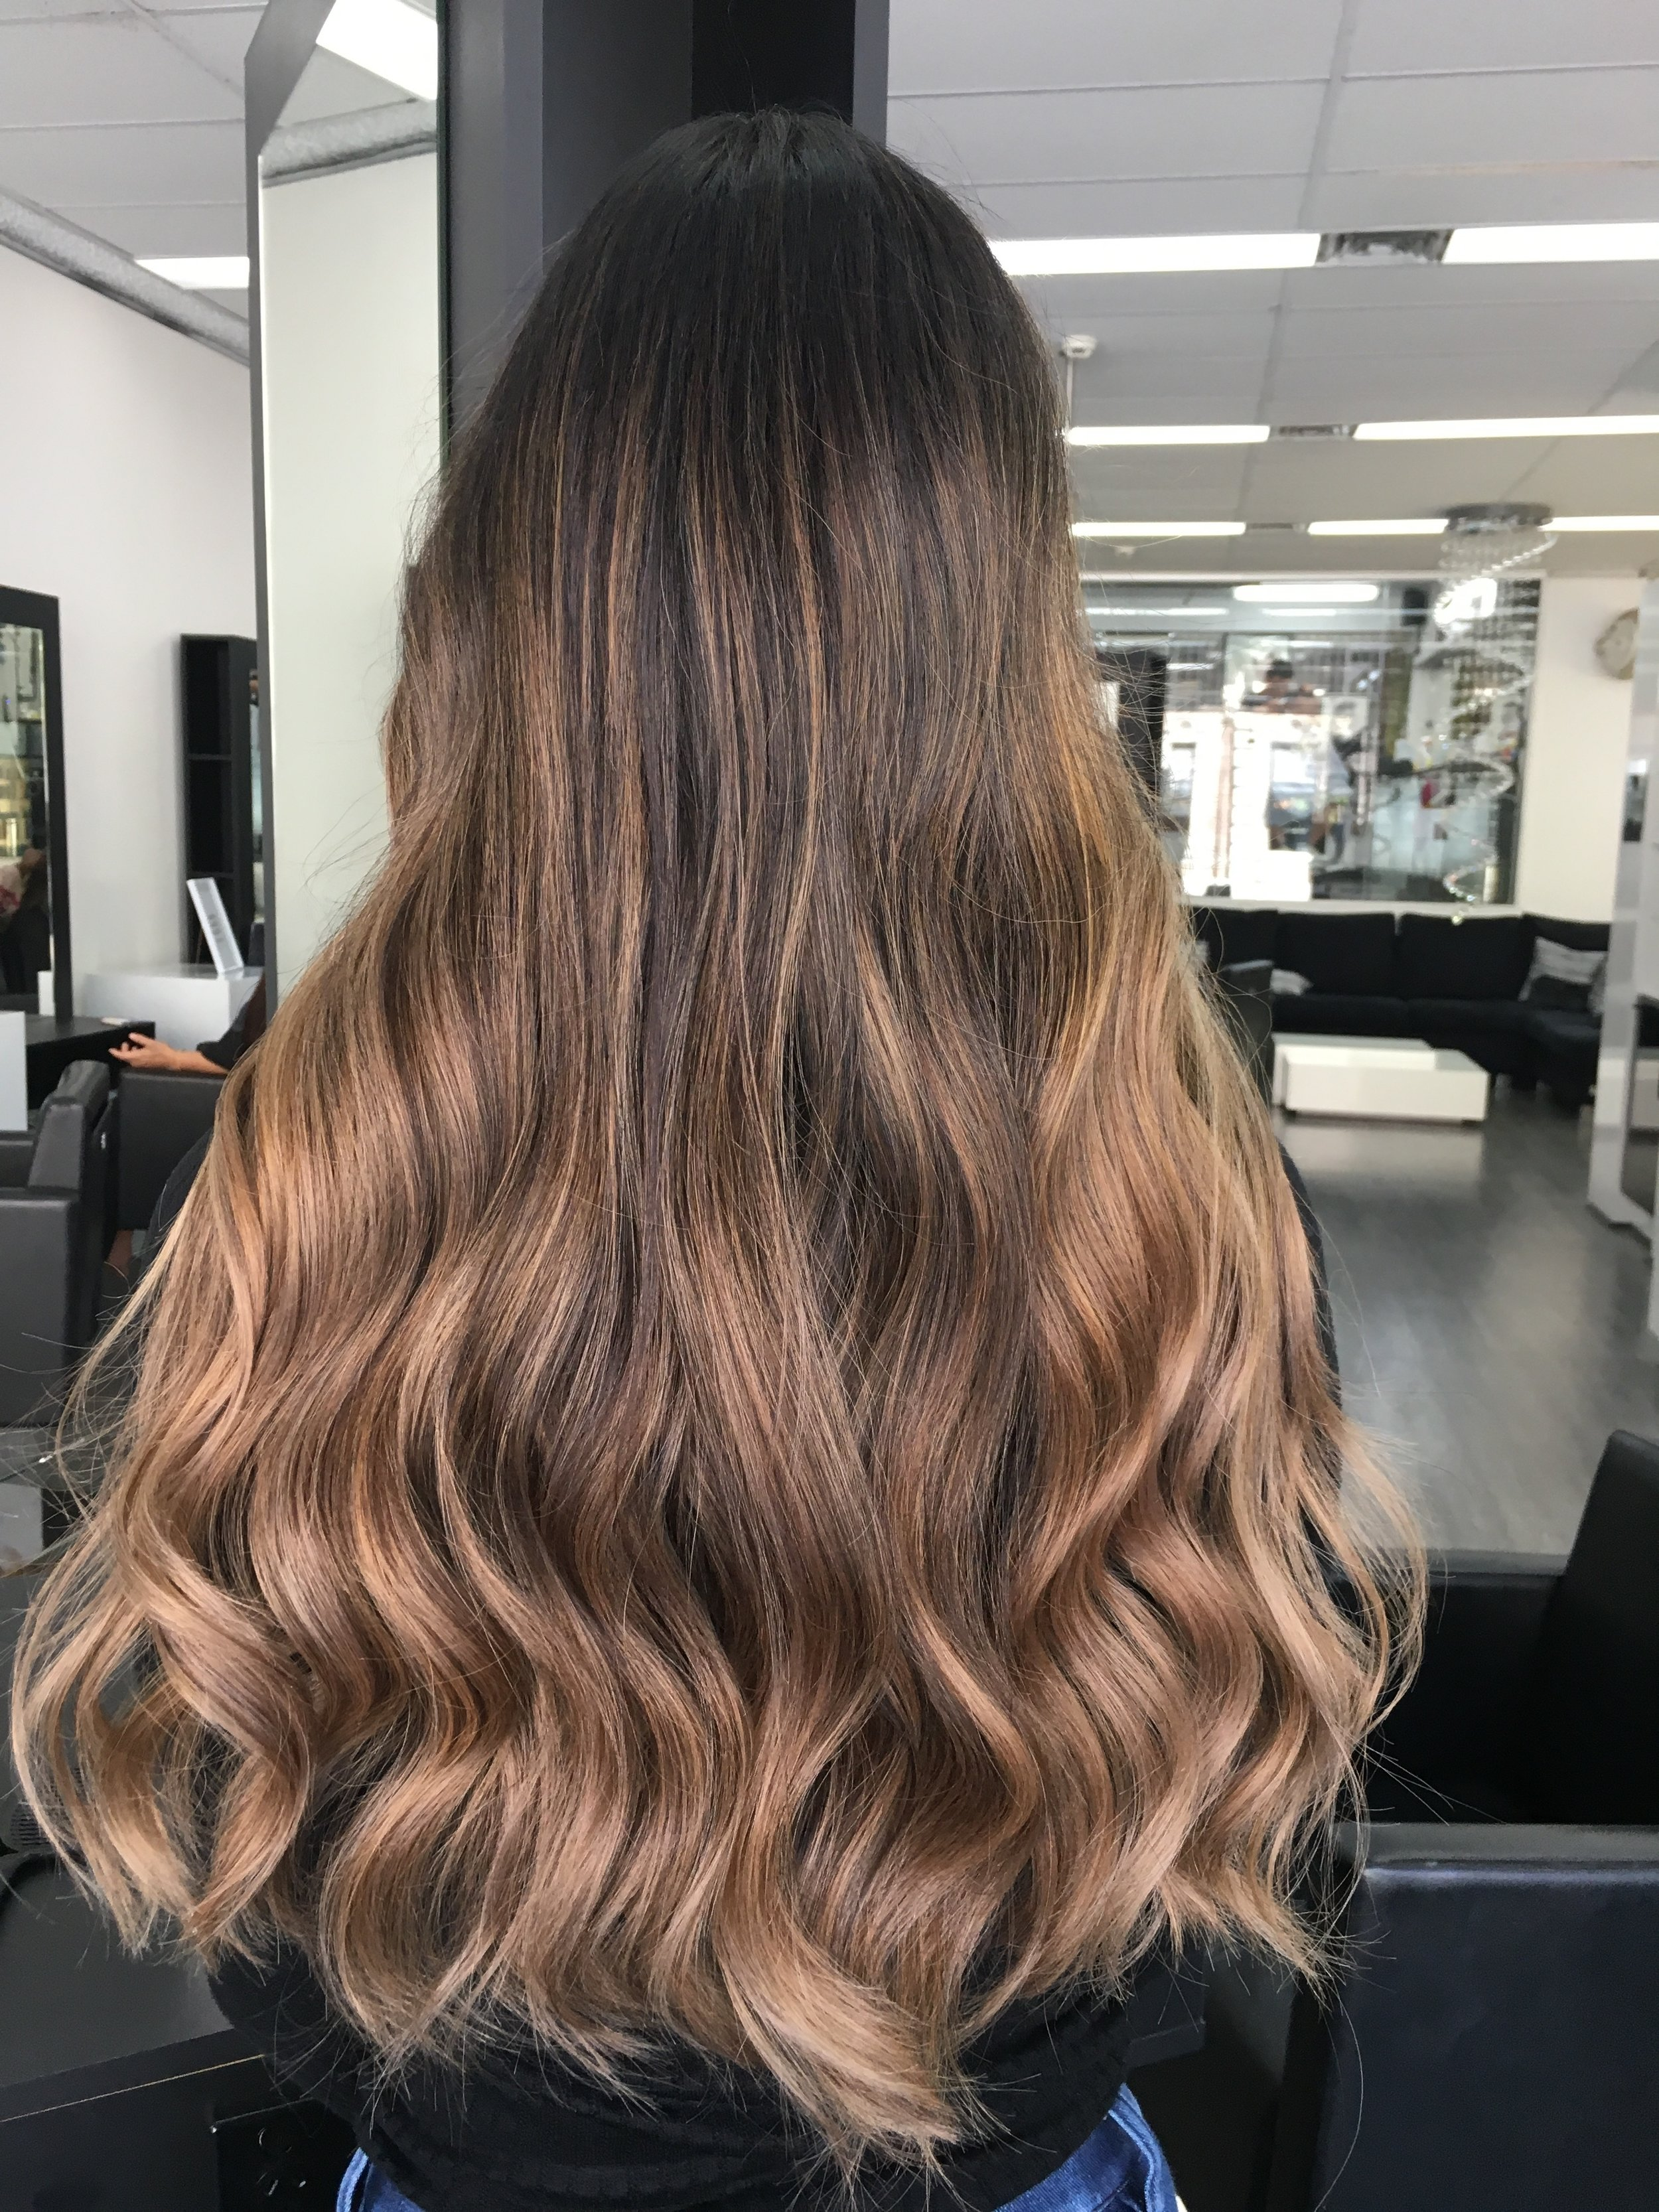 BALAYAGE OR OMBRE - Balayage/ombreFROM $250